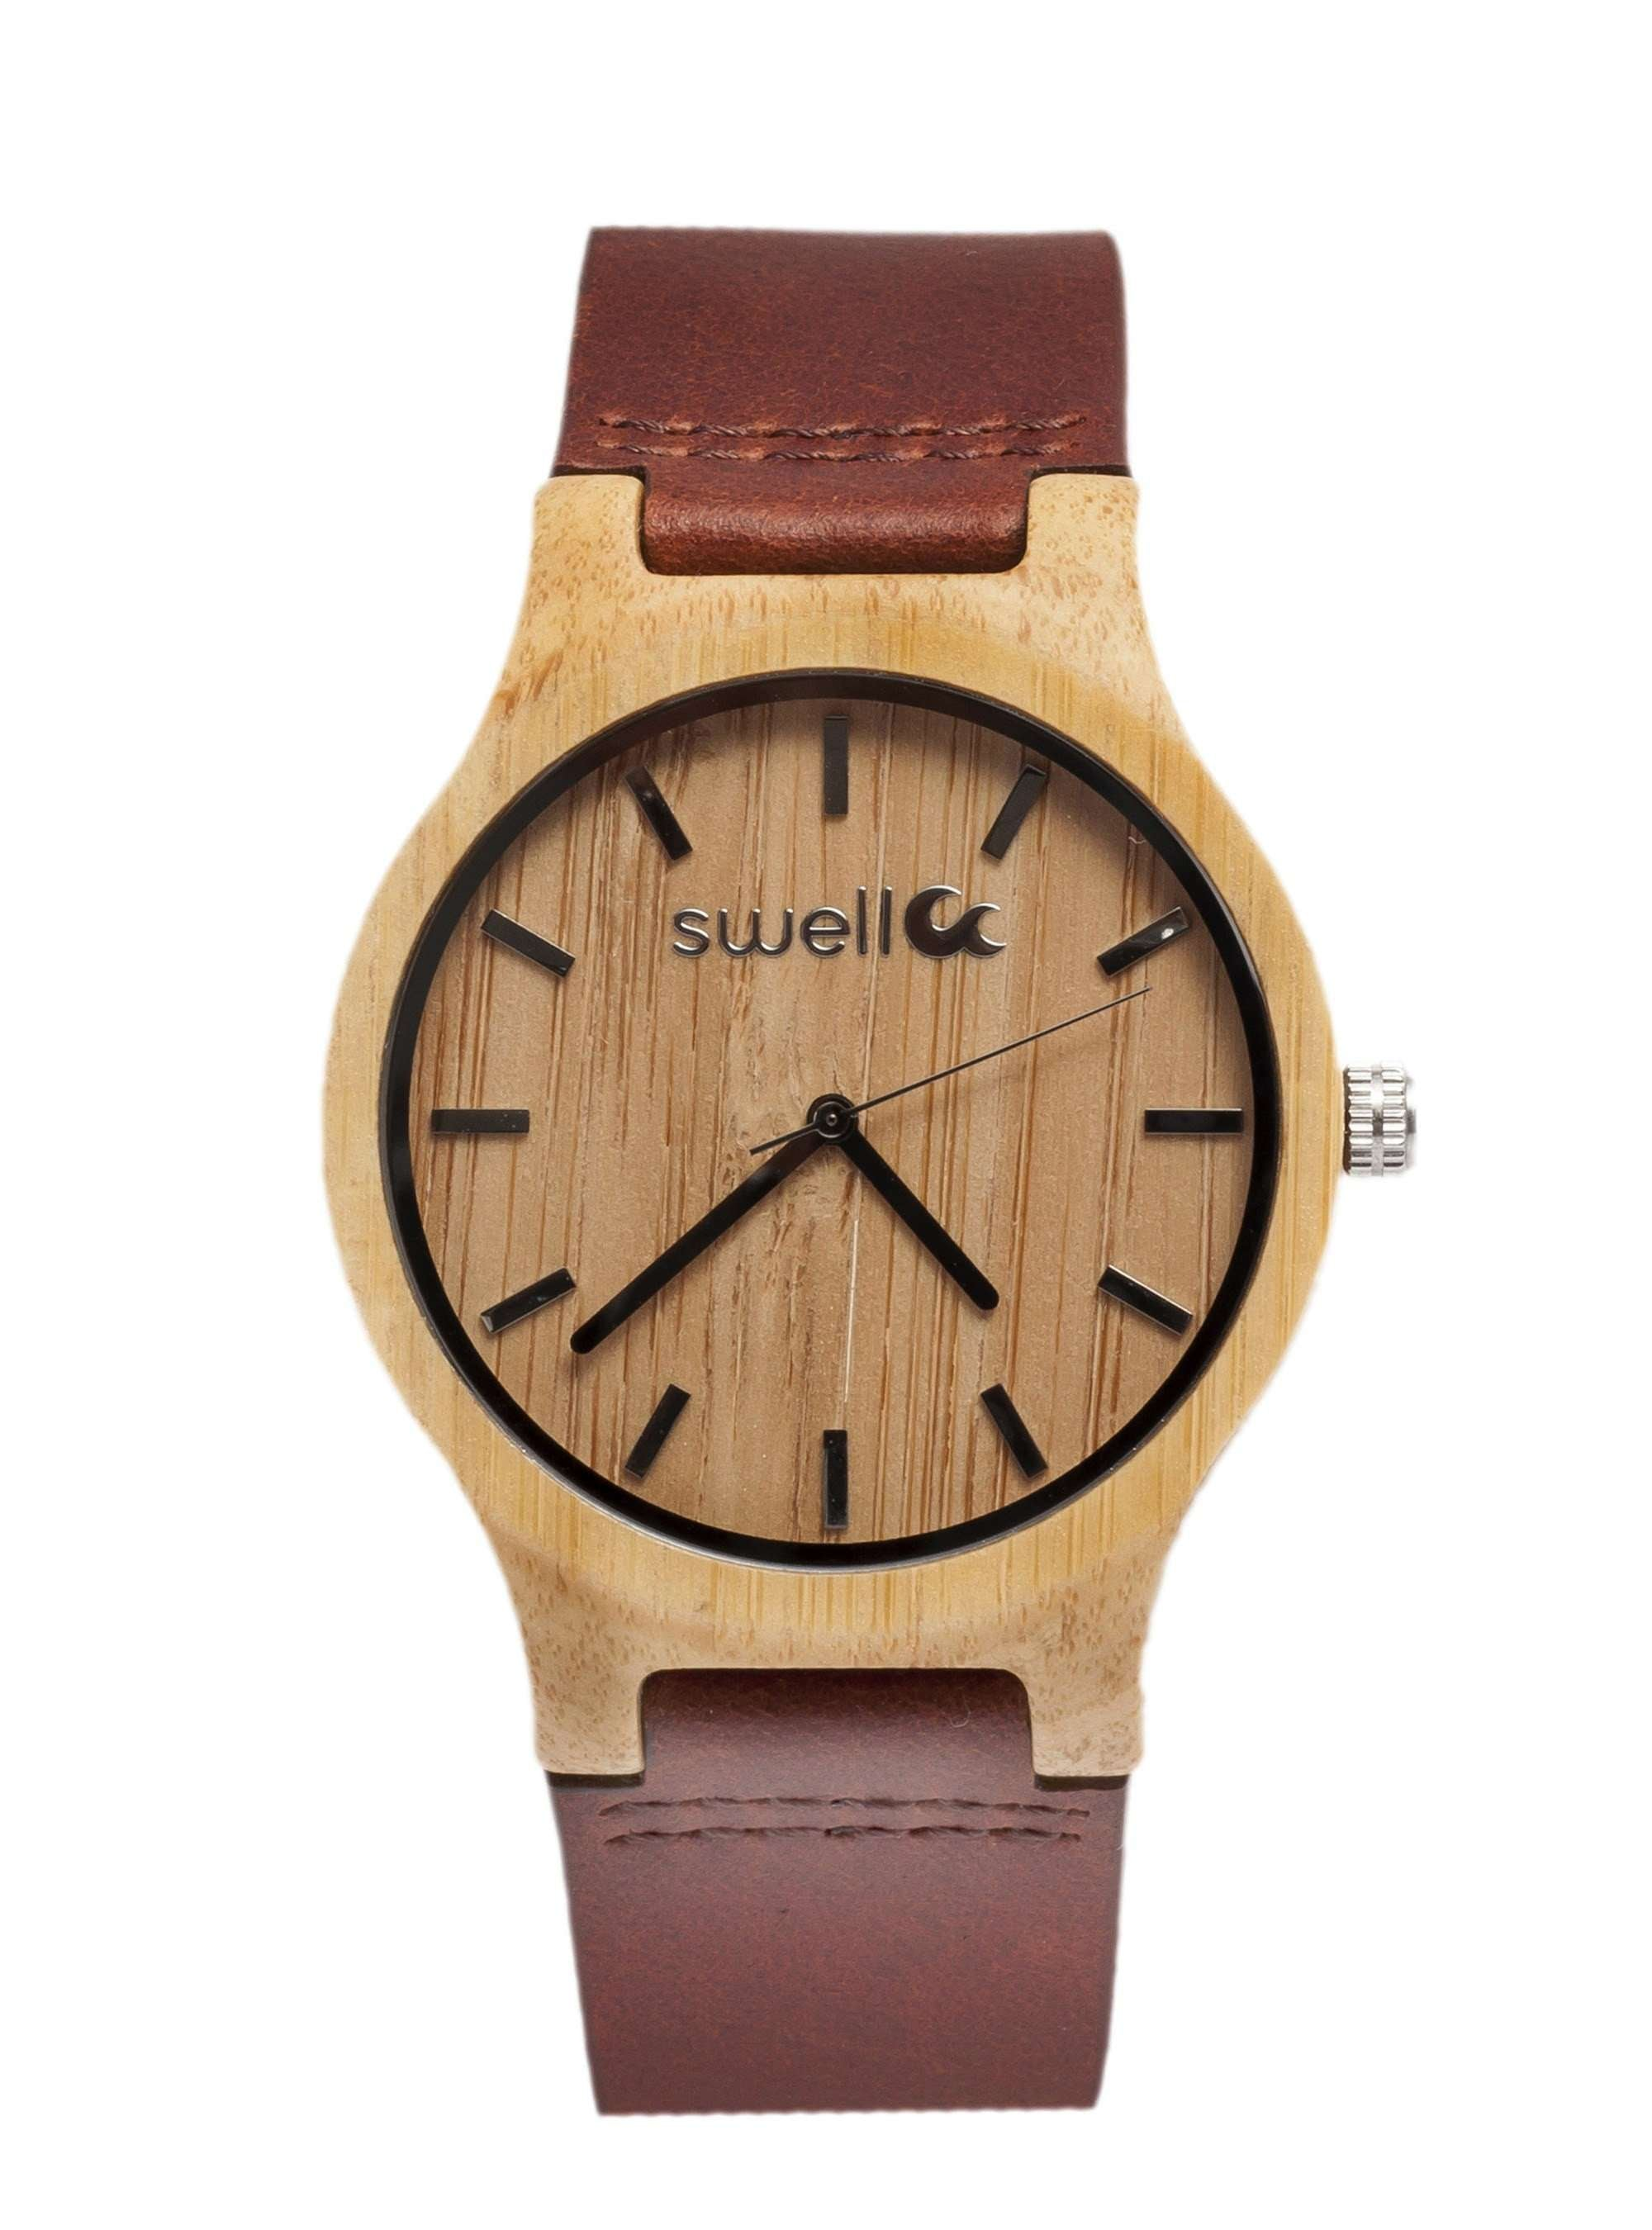 watch hot brand luxury uwood men quartz wooden women relogio bamboo casual watches wood sell top mens exquisitegroomingkit wrist products dress